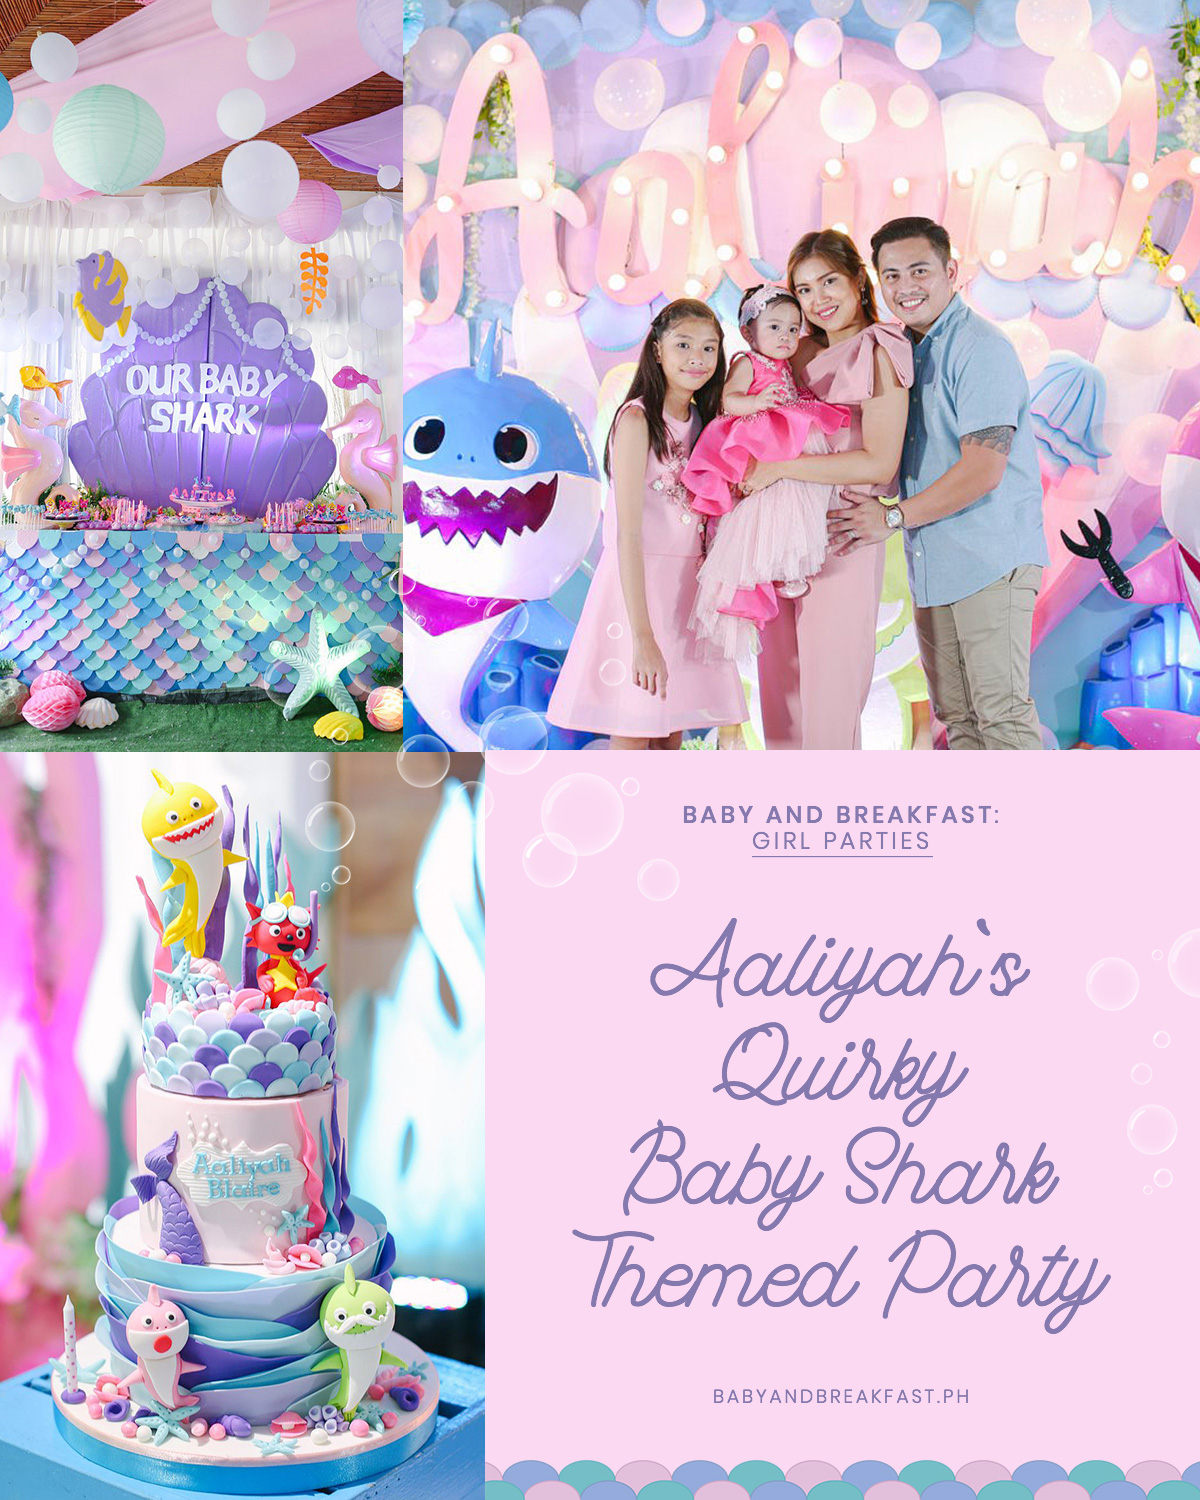 Baby and Breakfast: Girl Parties Aaliyah's Quirky Baby Shark Themed Party